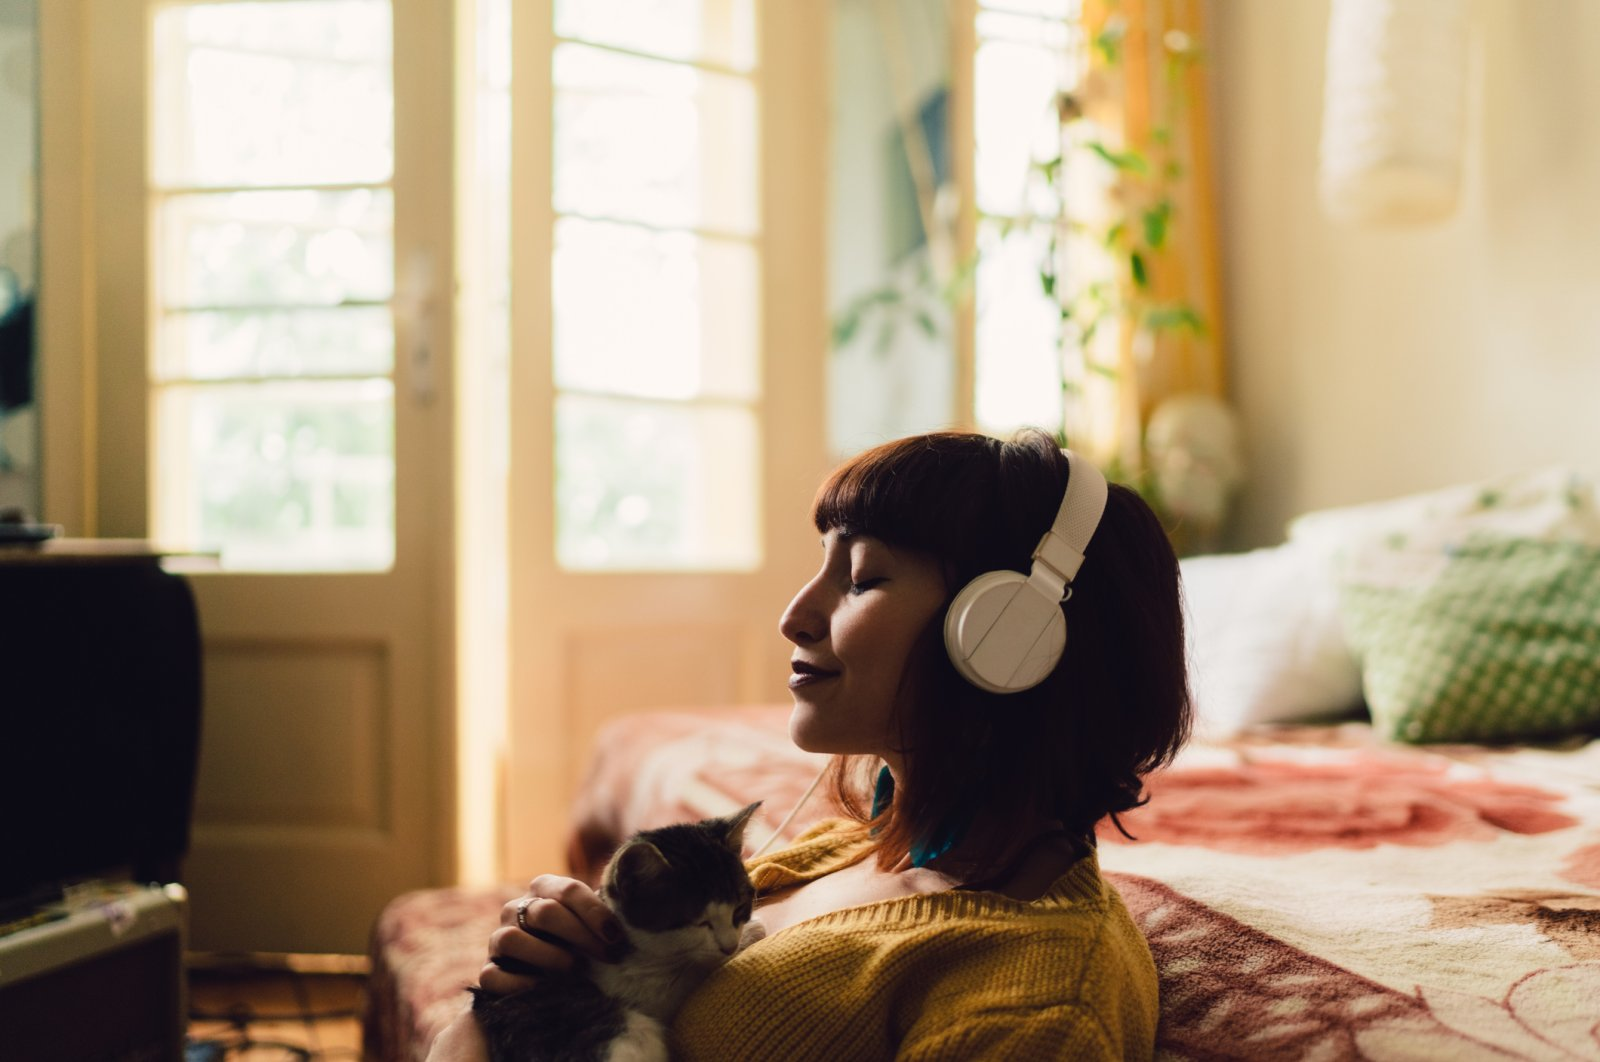 Teenage girl listens to audio while relaxing at home with her cat.